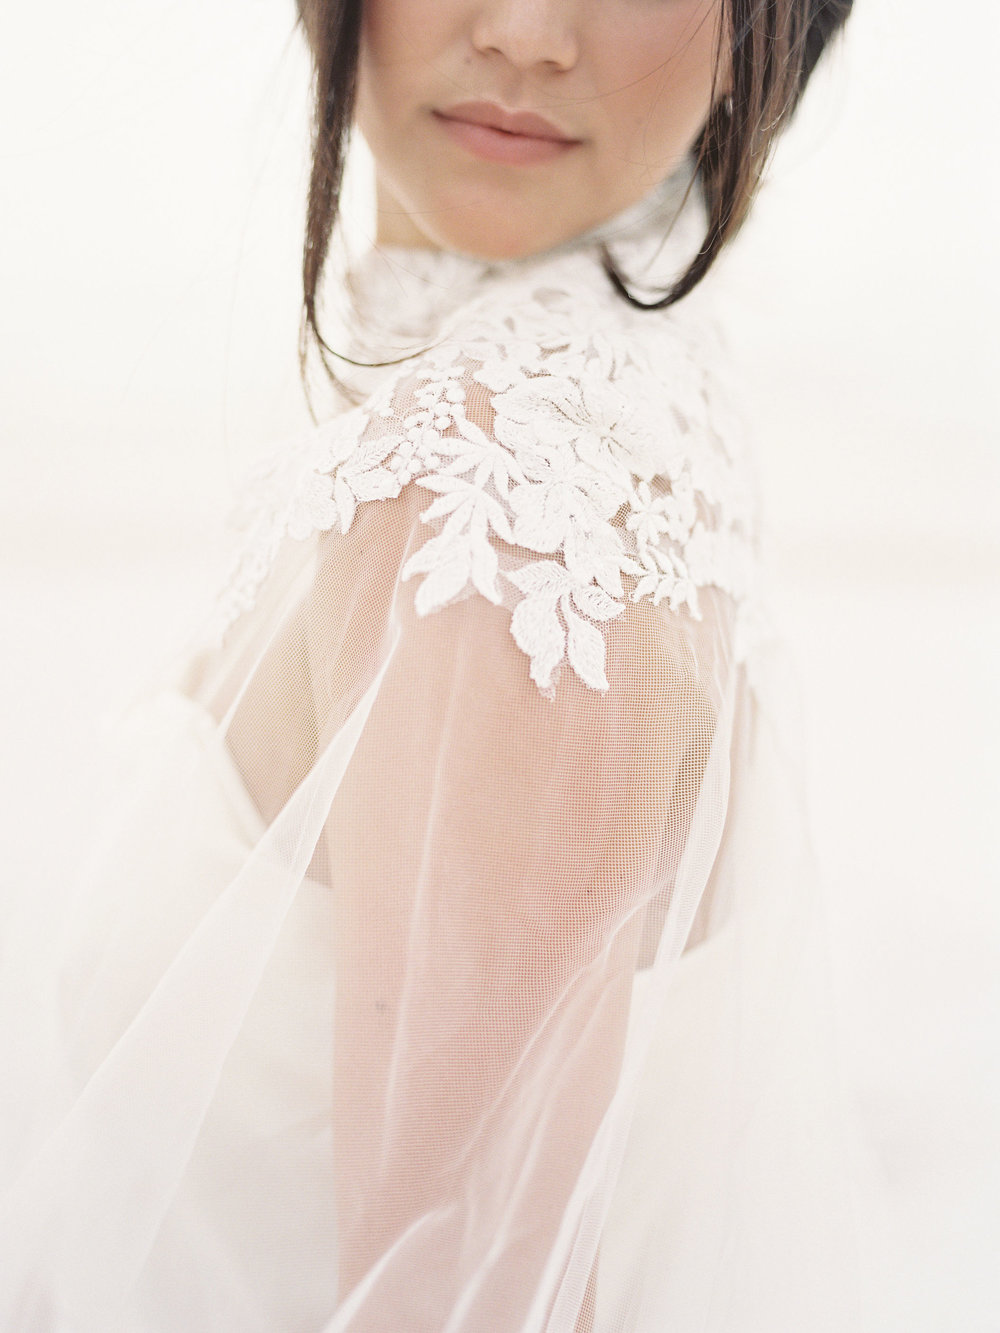 jessica-zimmerman-events-florida-editorial-lace-gown.jpg